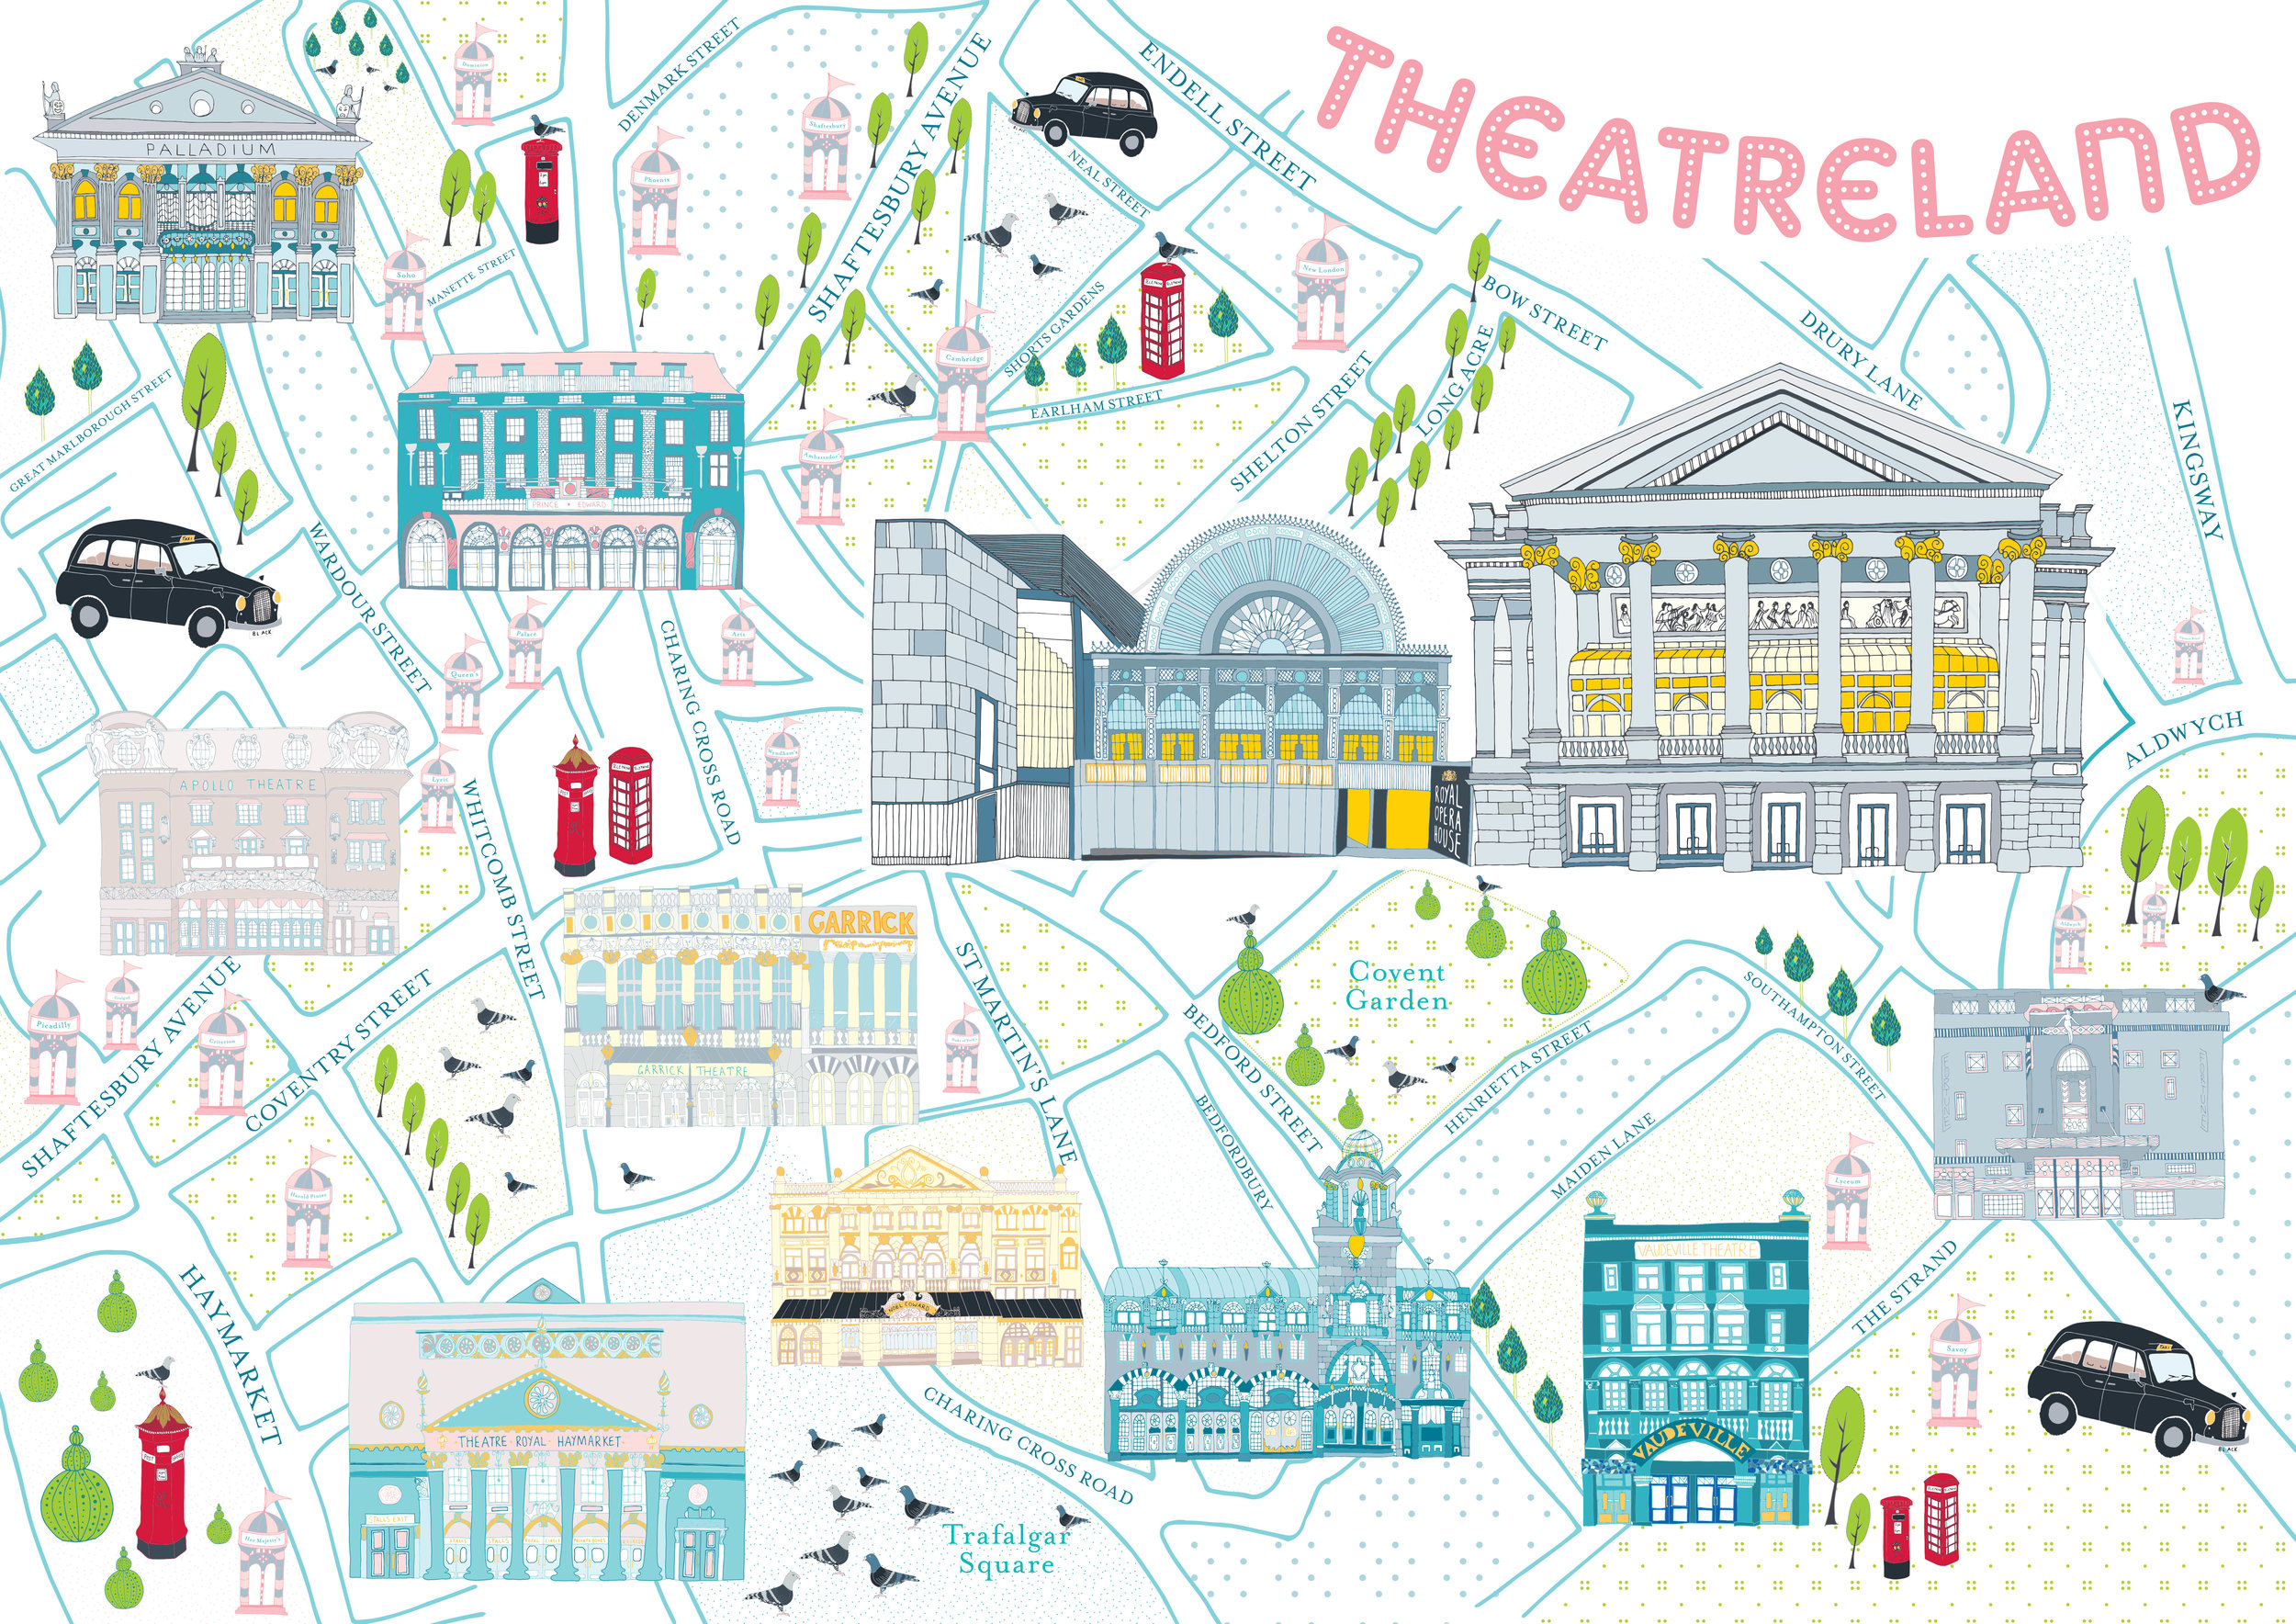 An illustrated map for The Royal Opera House in Covent Garden.